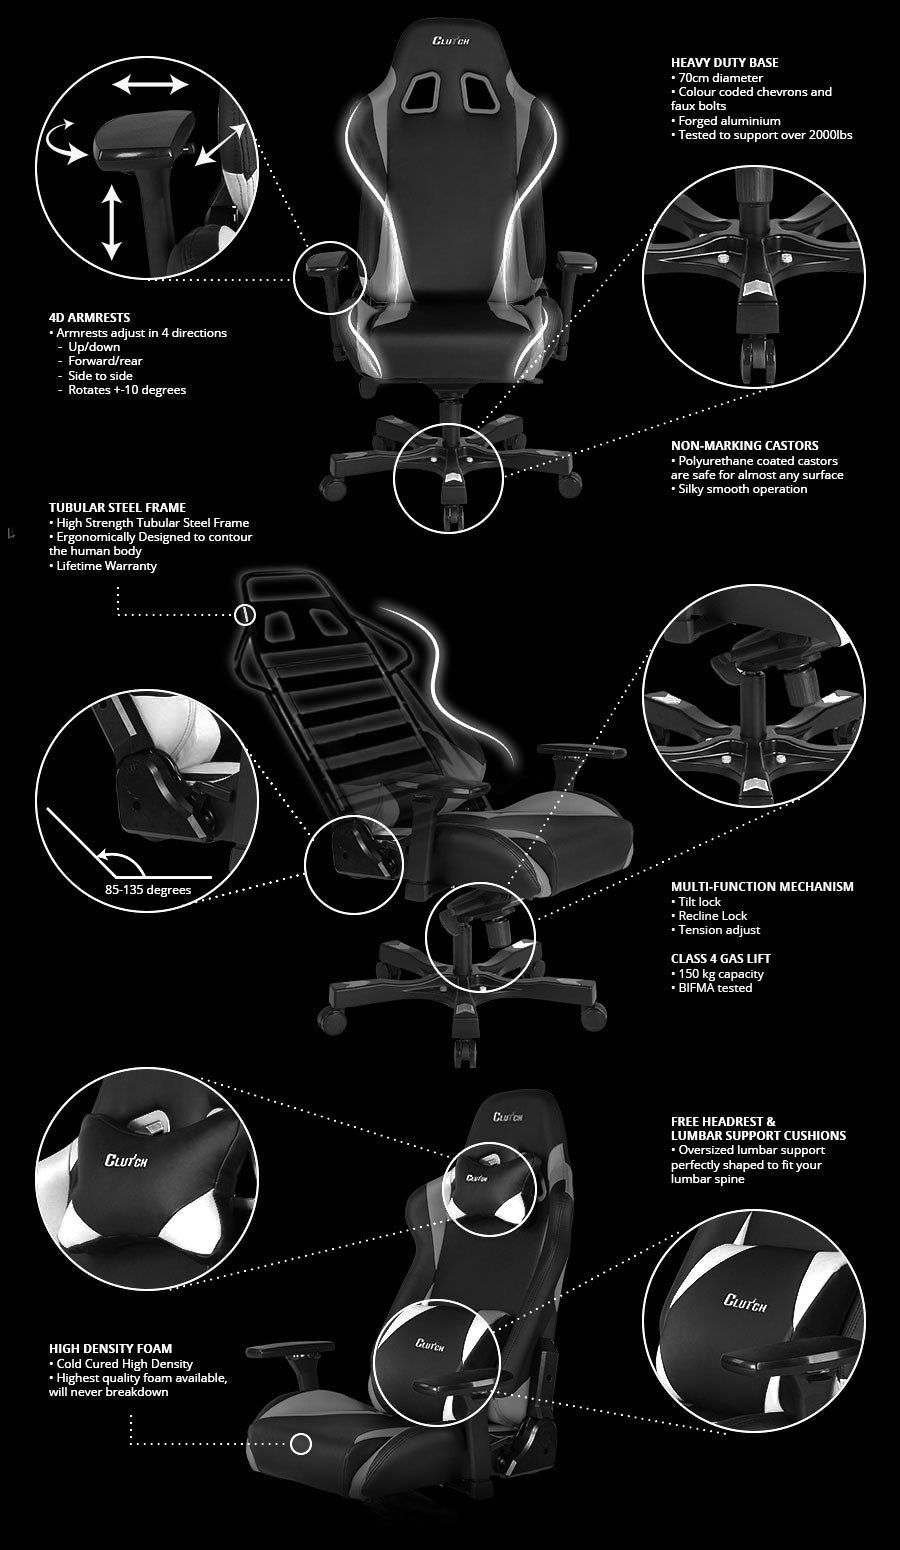 Clutch Throttle Series Echo Gaming Chair